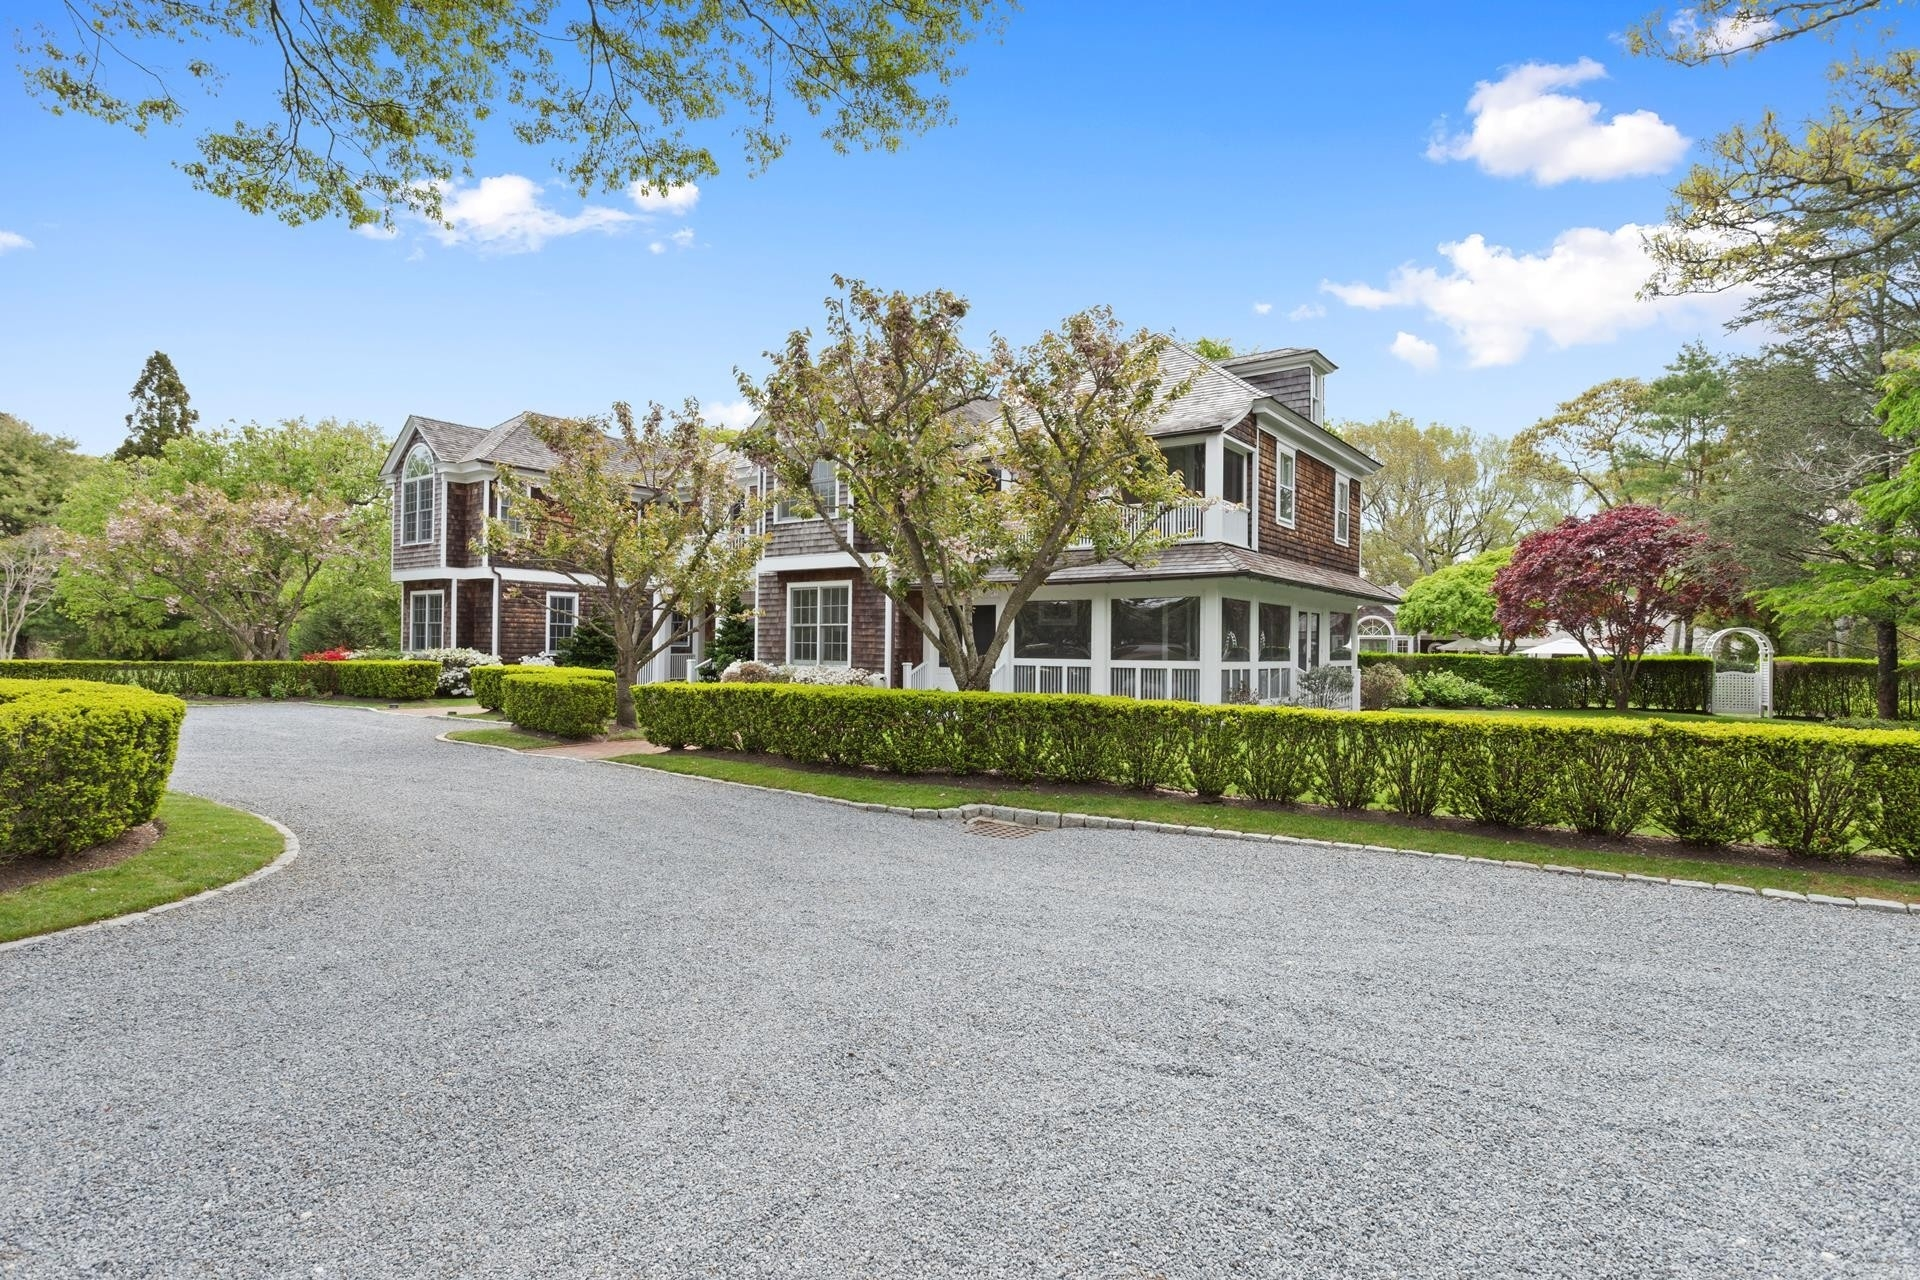 33. Single Family Homes for Sale at Quogue Village, NY 11959